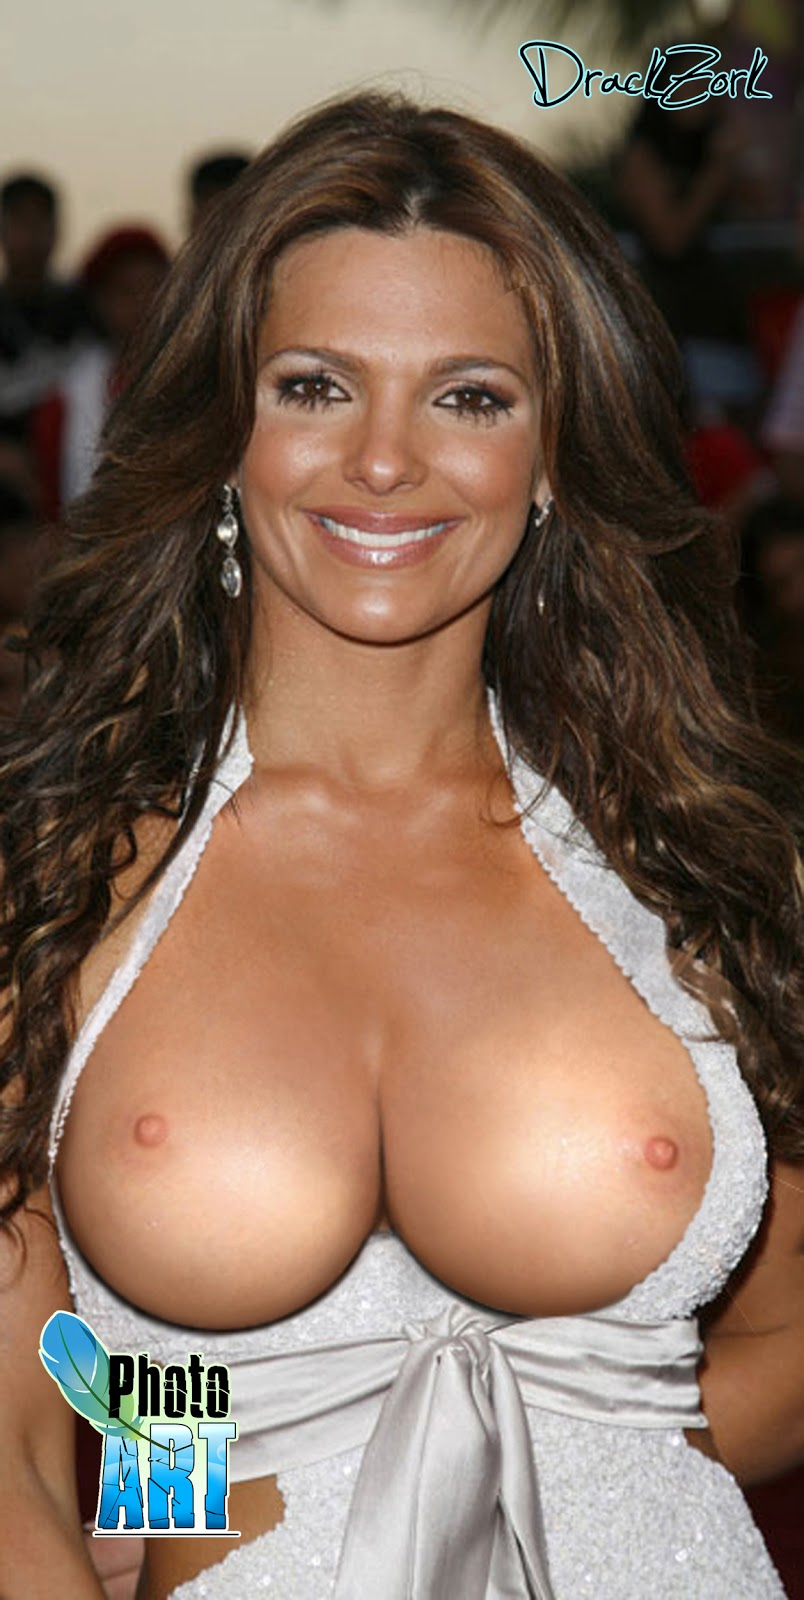 Thought Barbara bermudo porno amateur opinion you